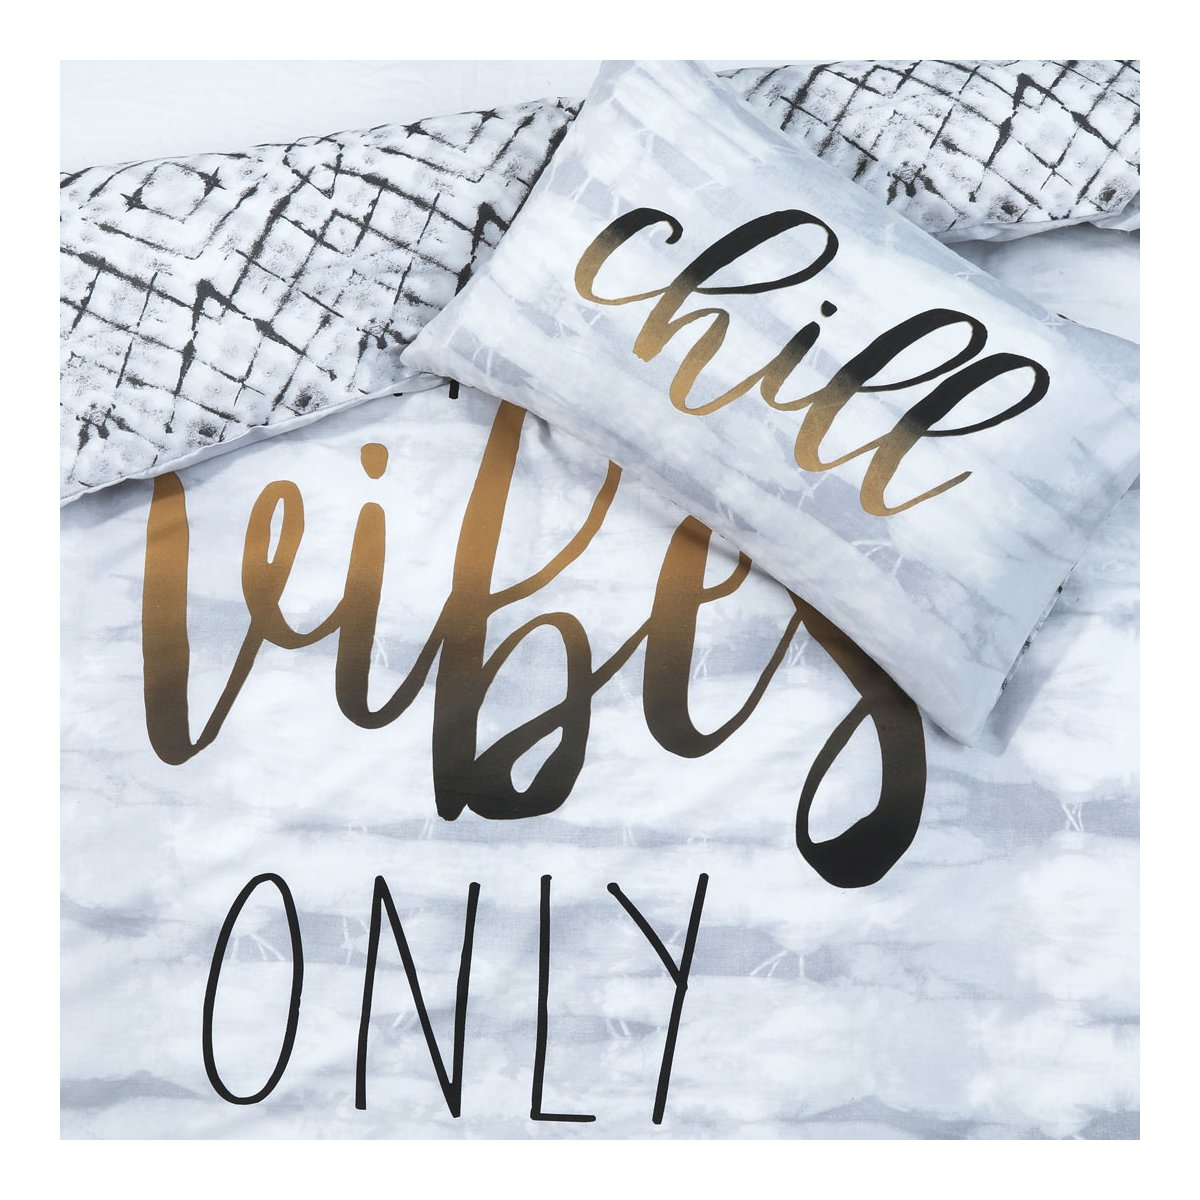 Chill Slogan Bedding - Reversible Duvet Cover and Pillowcase Set